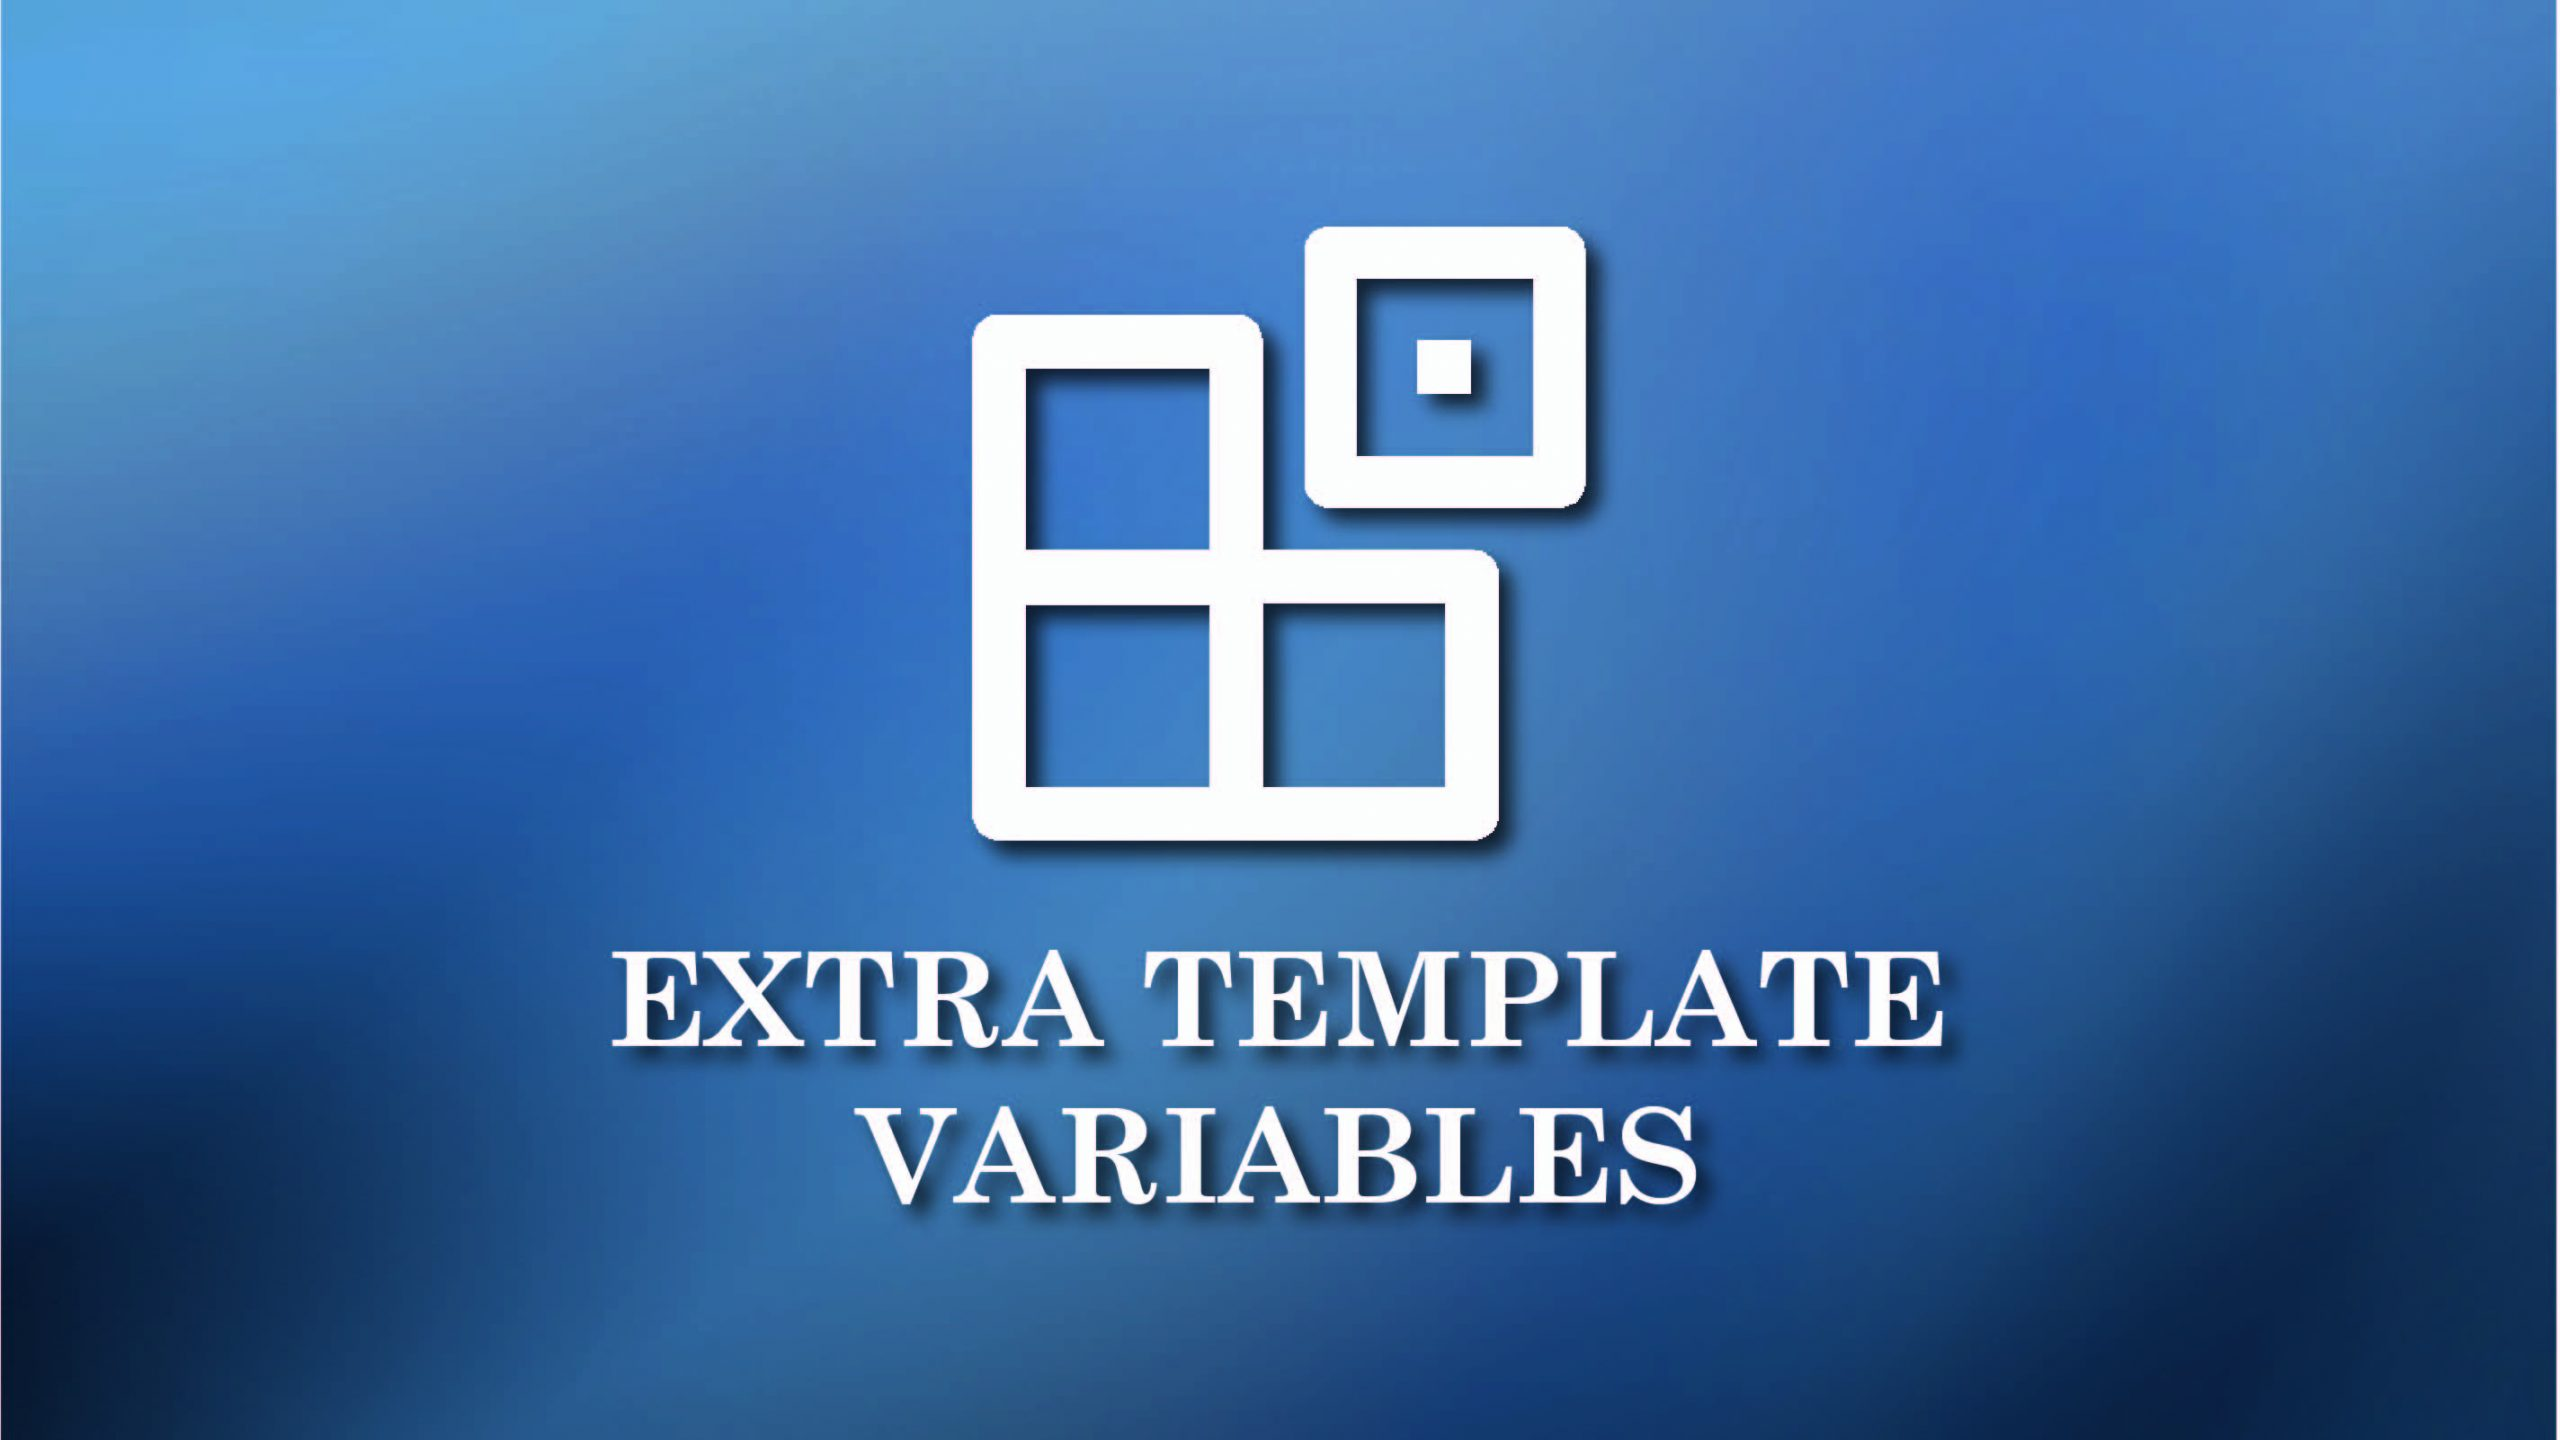 Extra template variable